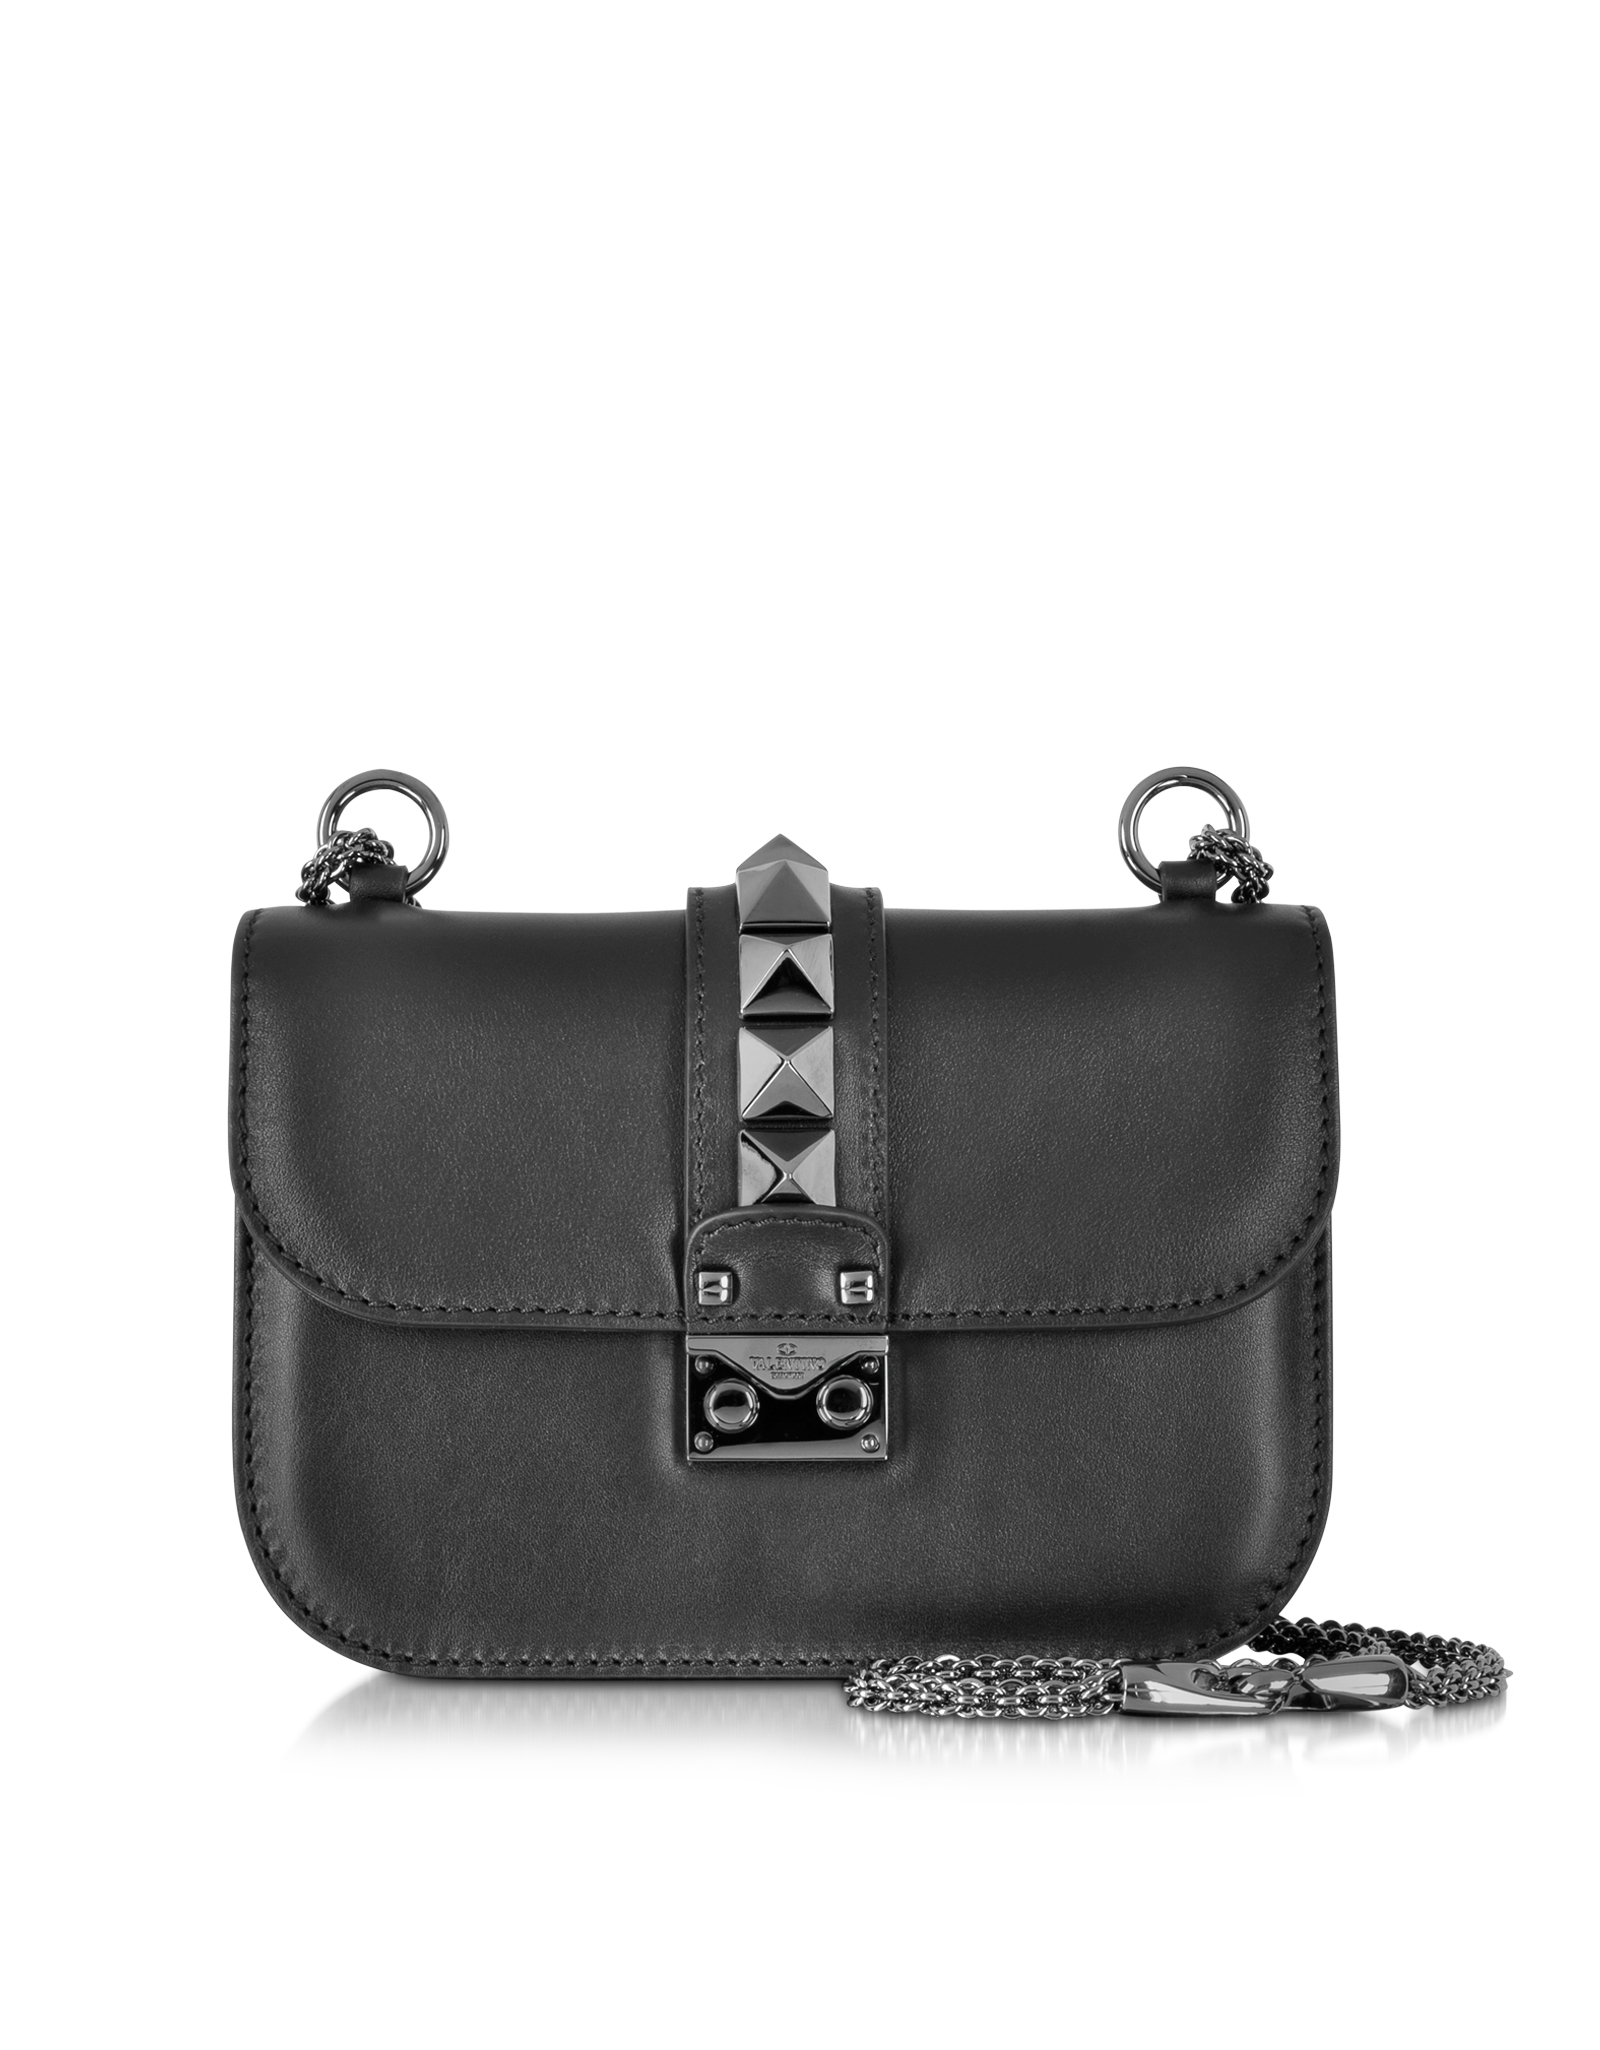 Valentino Noir Small Chain Shoulder Bag in Black | Lyst